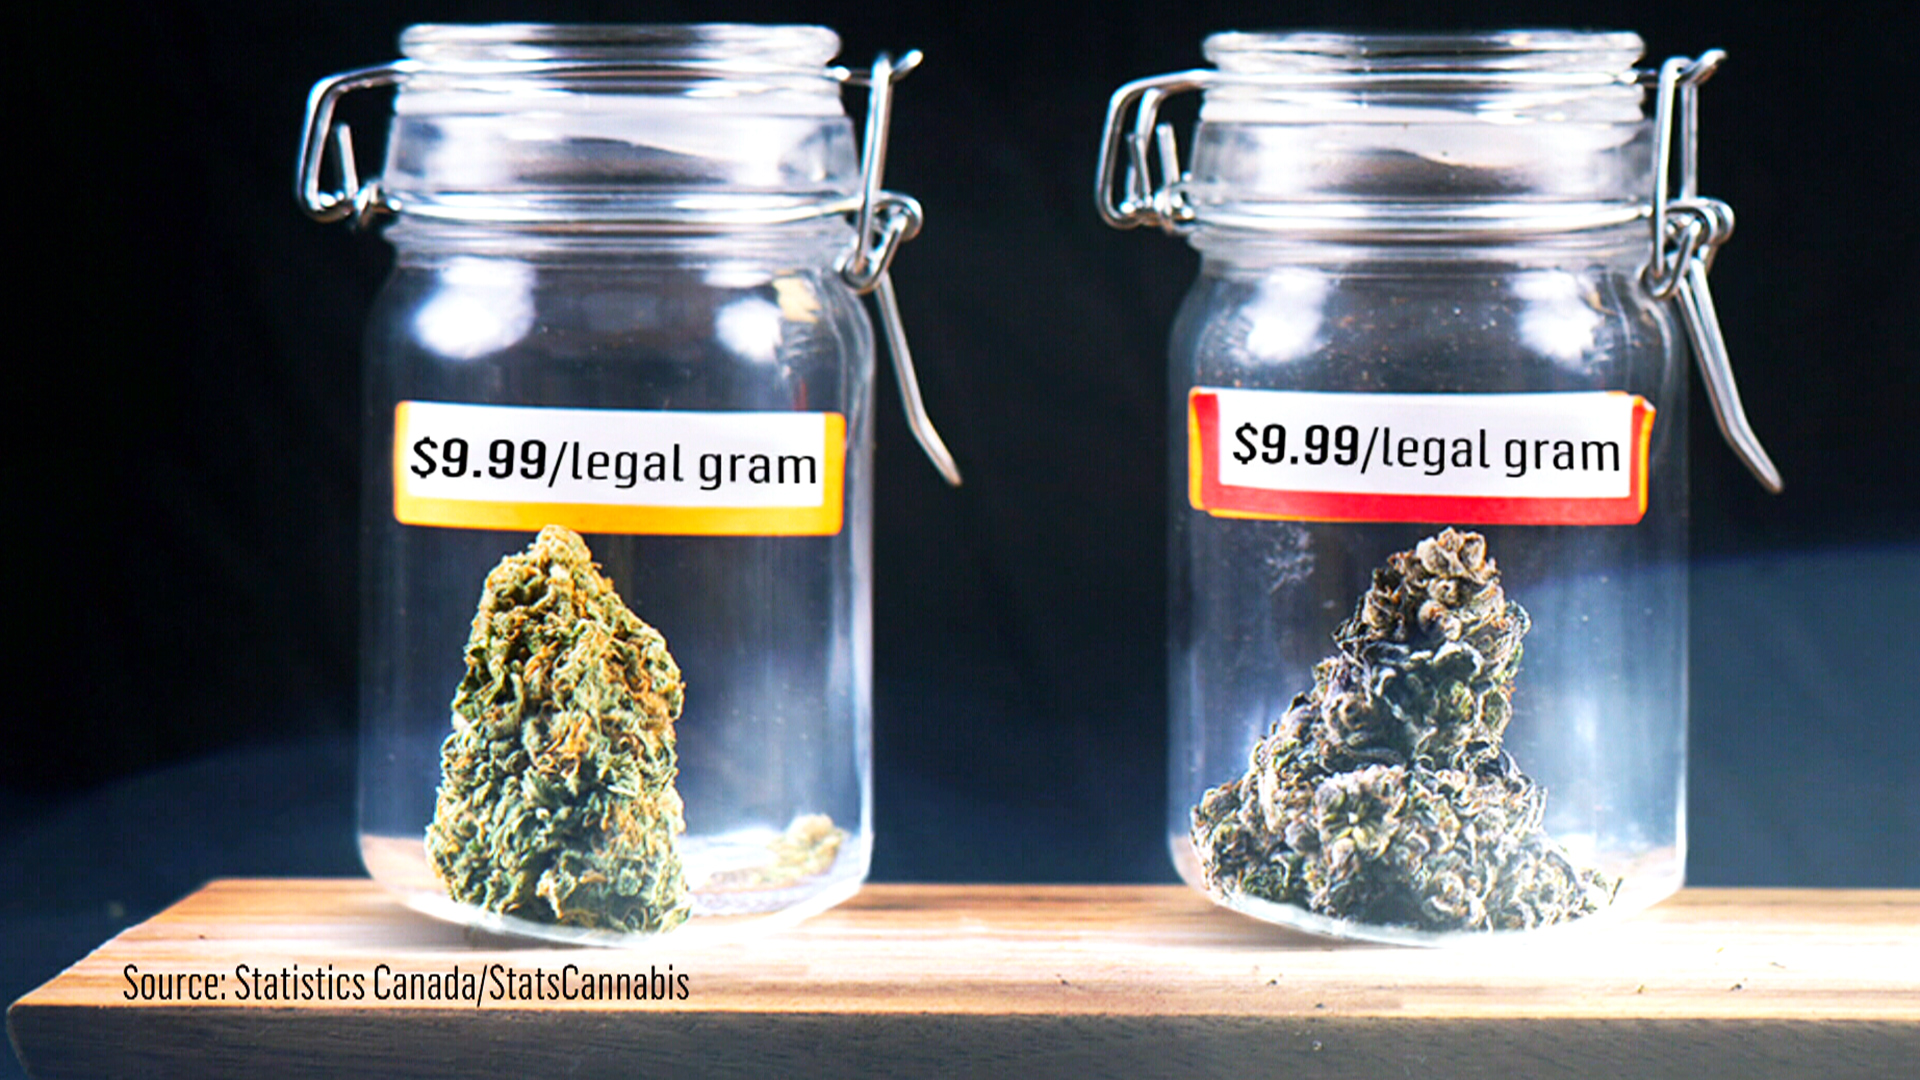 Weed prices soar since legalization, illegal pot selling for